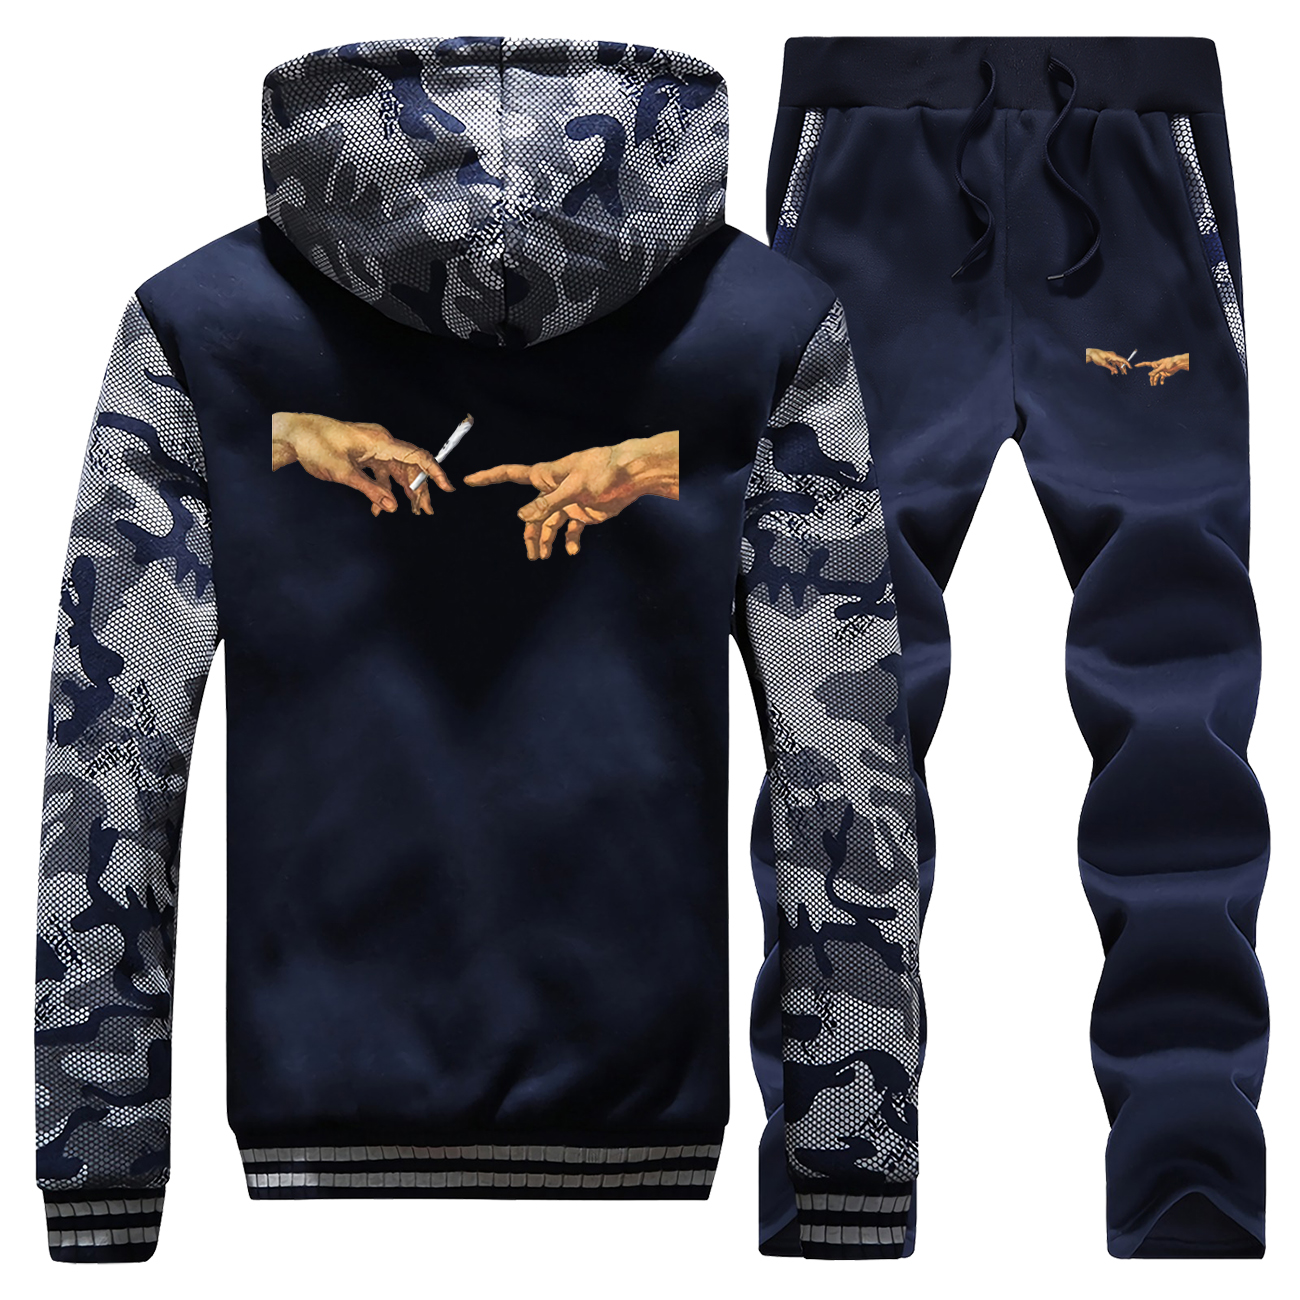 Funny Print Michelangelo Vintage Camo Jackets 2019 Winter Bodywarmer Complete Man Tracksuit Genesis Hoodies Pants Two Piece Set